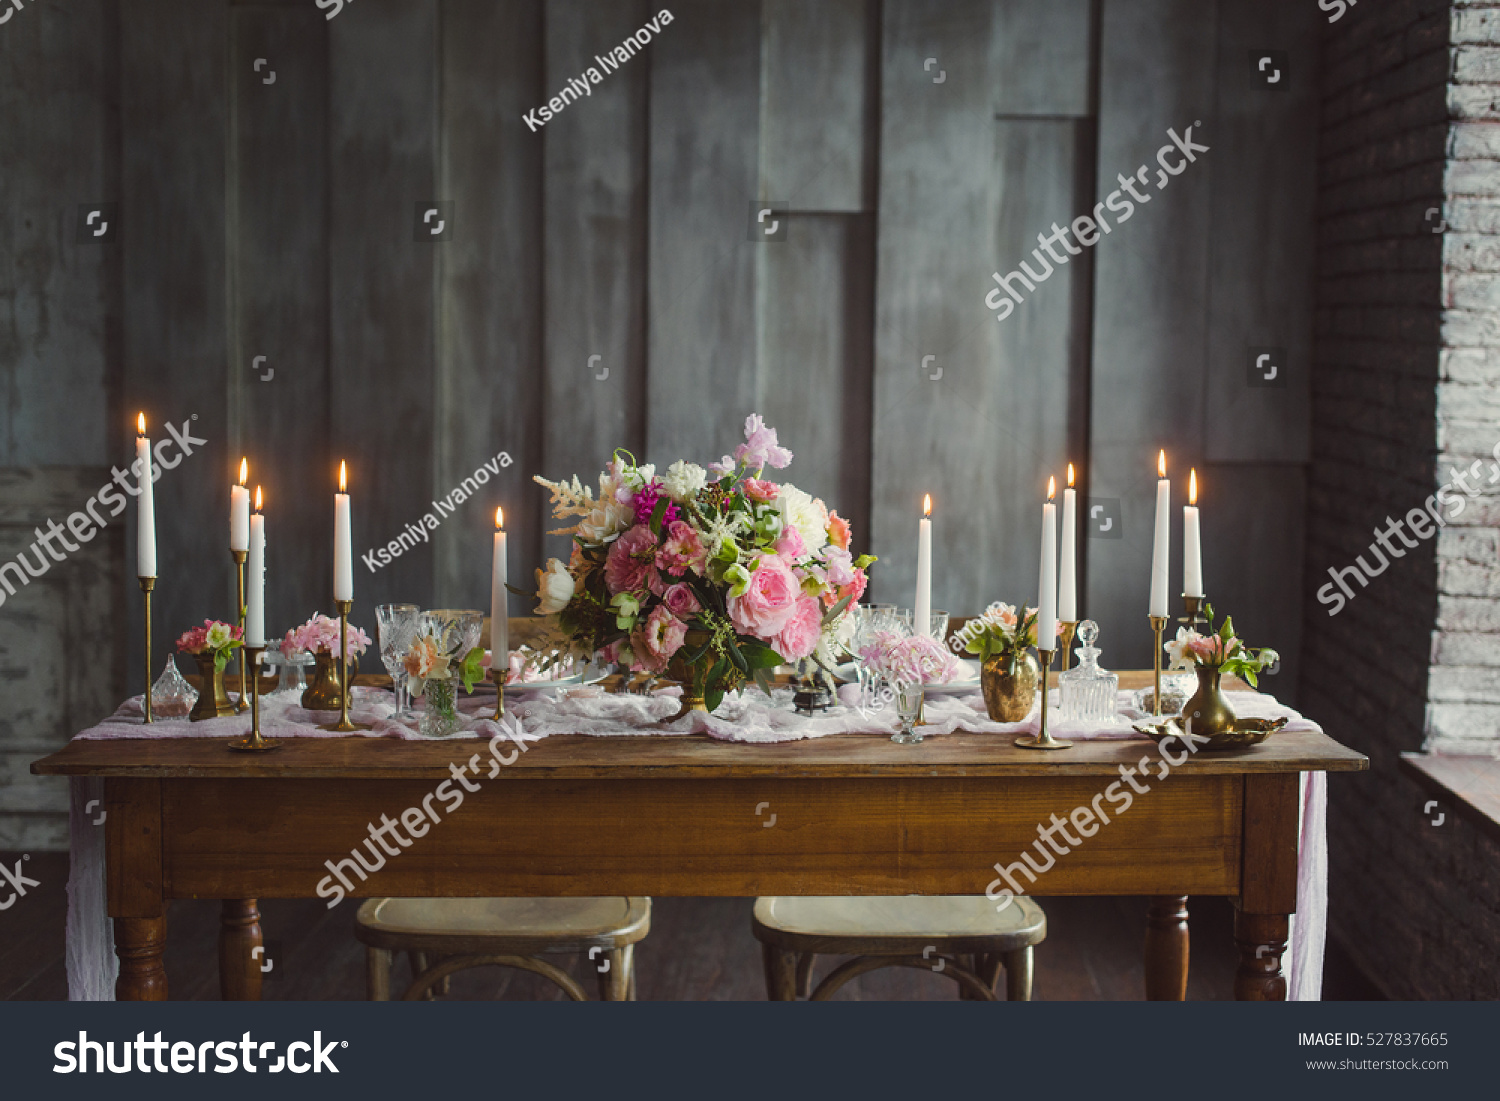 Wedding decoration candles on table decor stock photo 527837665 wedding decoration candles on the table with decor and a bouquet of pink and white junglespirit Image collections